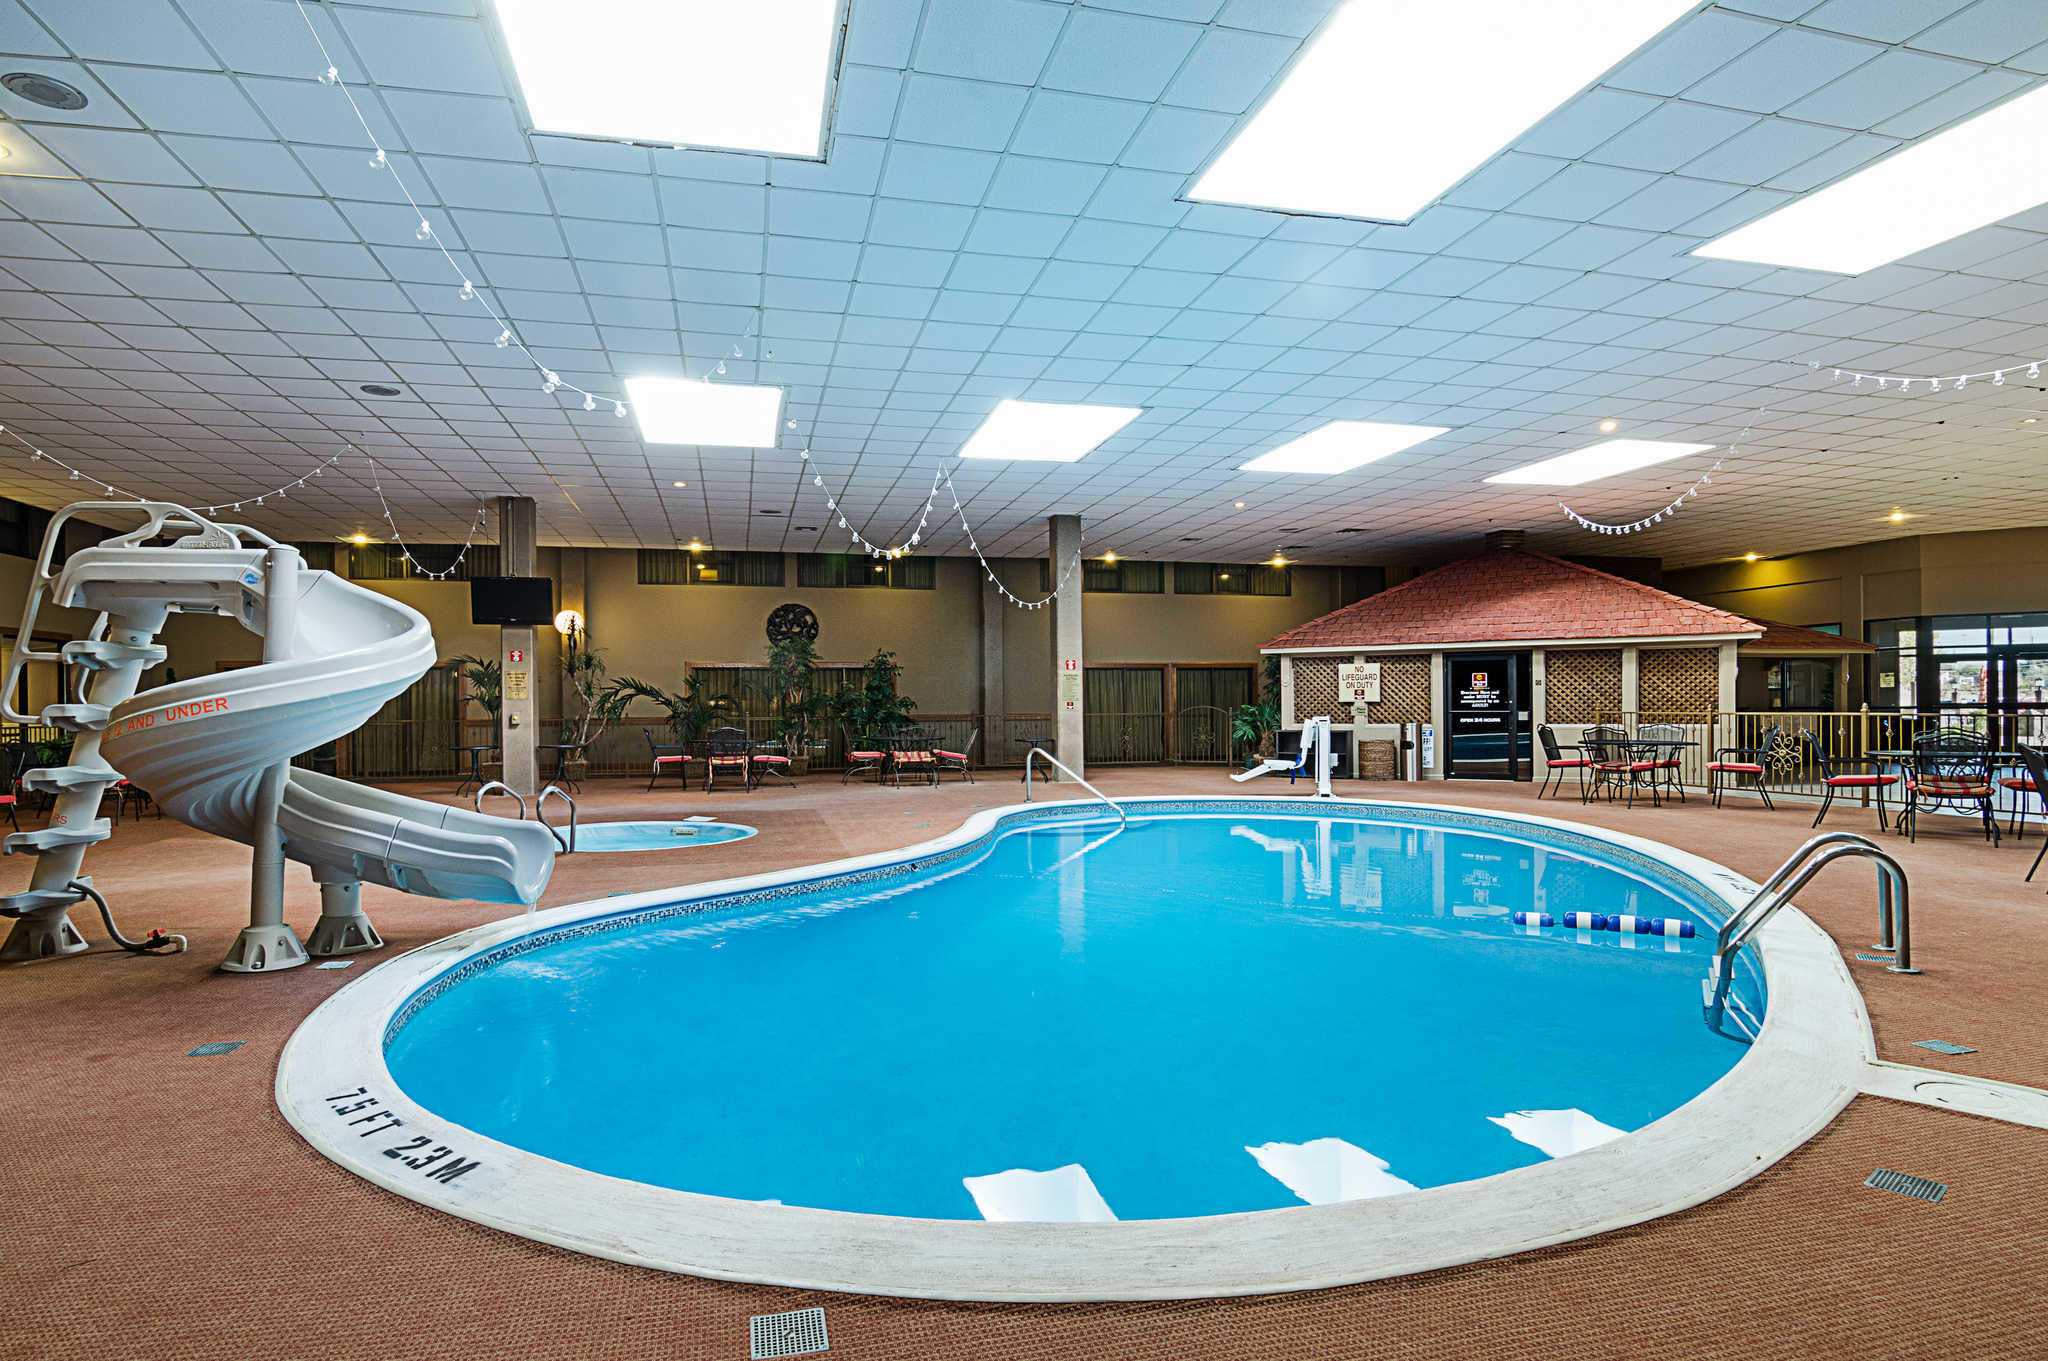 Clarion inn garden city ks business directory for Garden city pool jobs